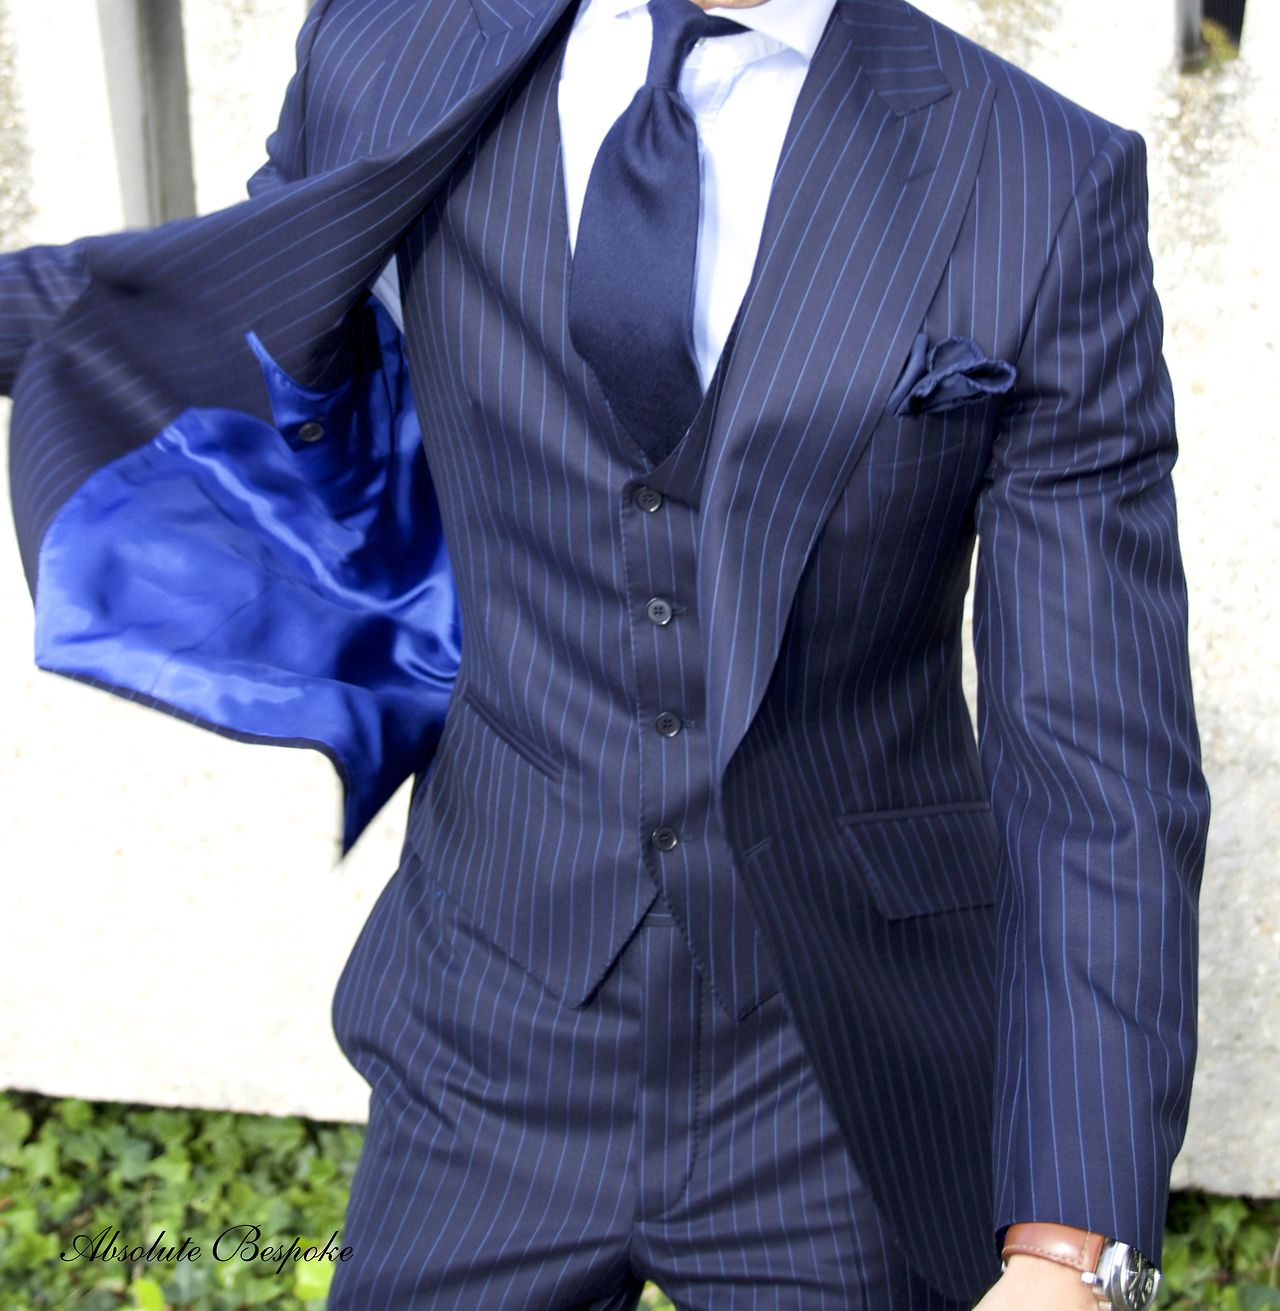 Absolute Bespoke pinstripe three piece suit | Show | Pinterest ...